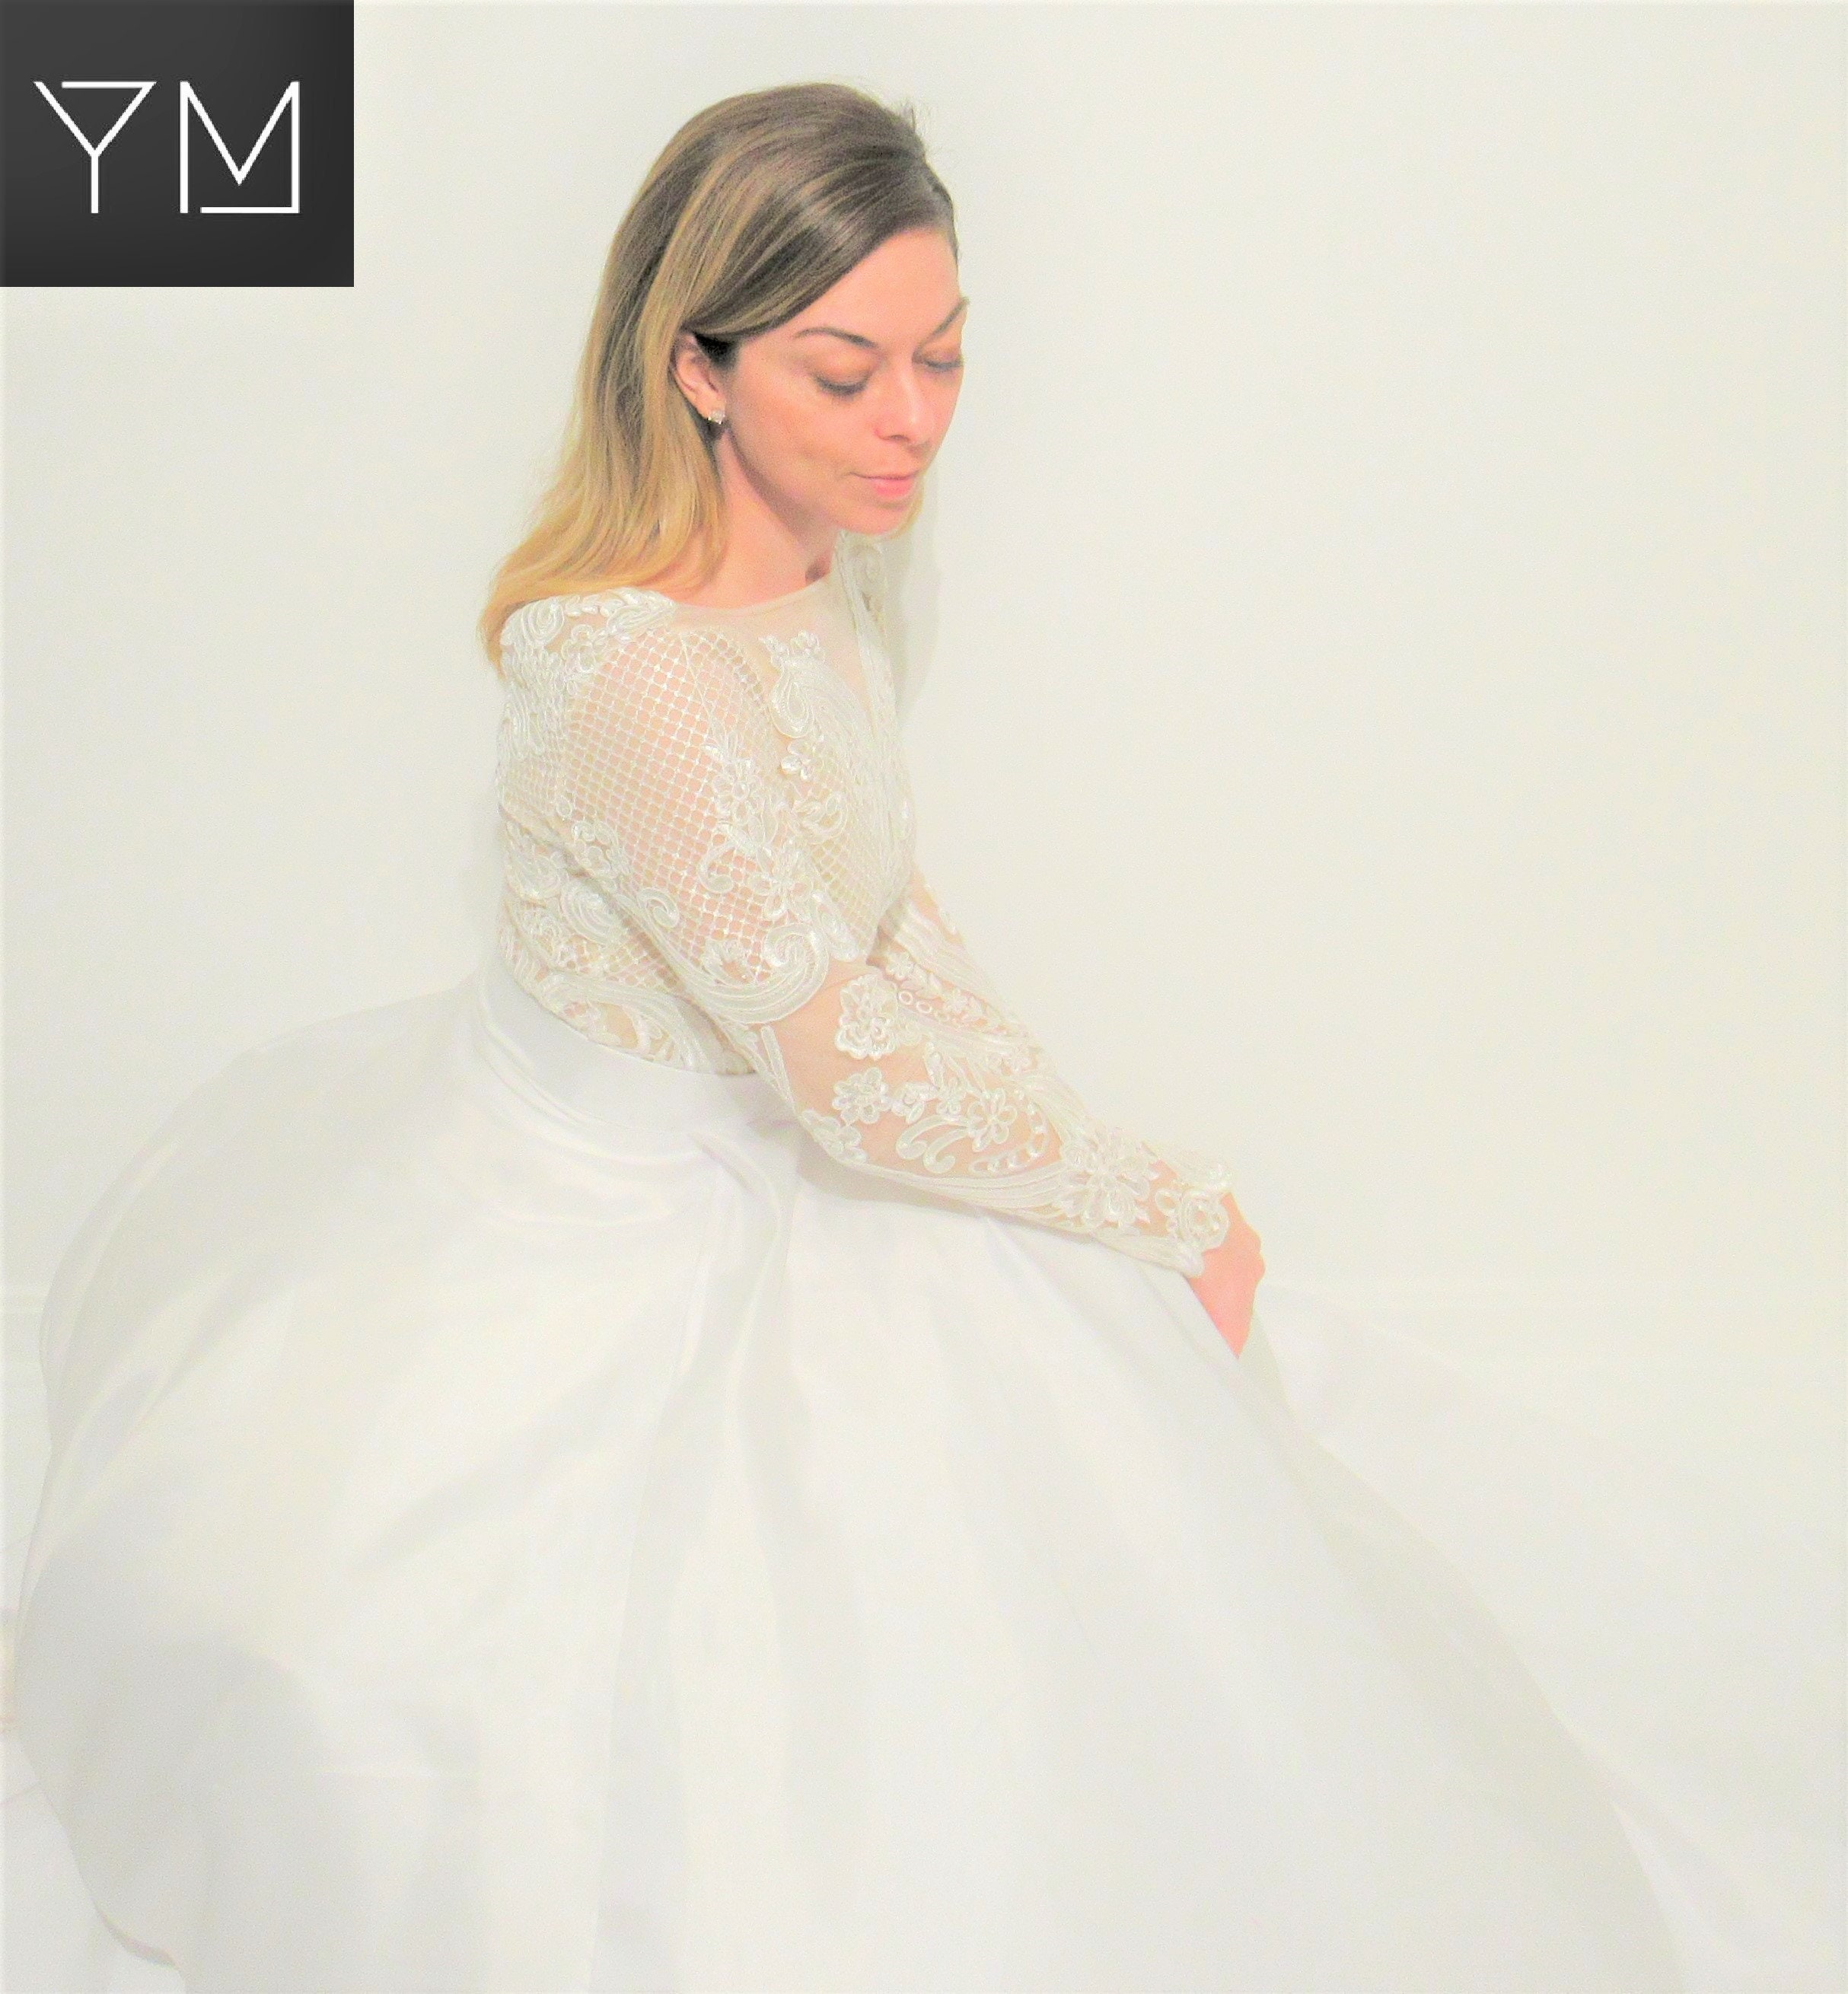 b840b344bc31c Yours & Mine Bridal Gown or Separates